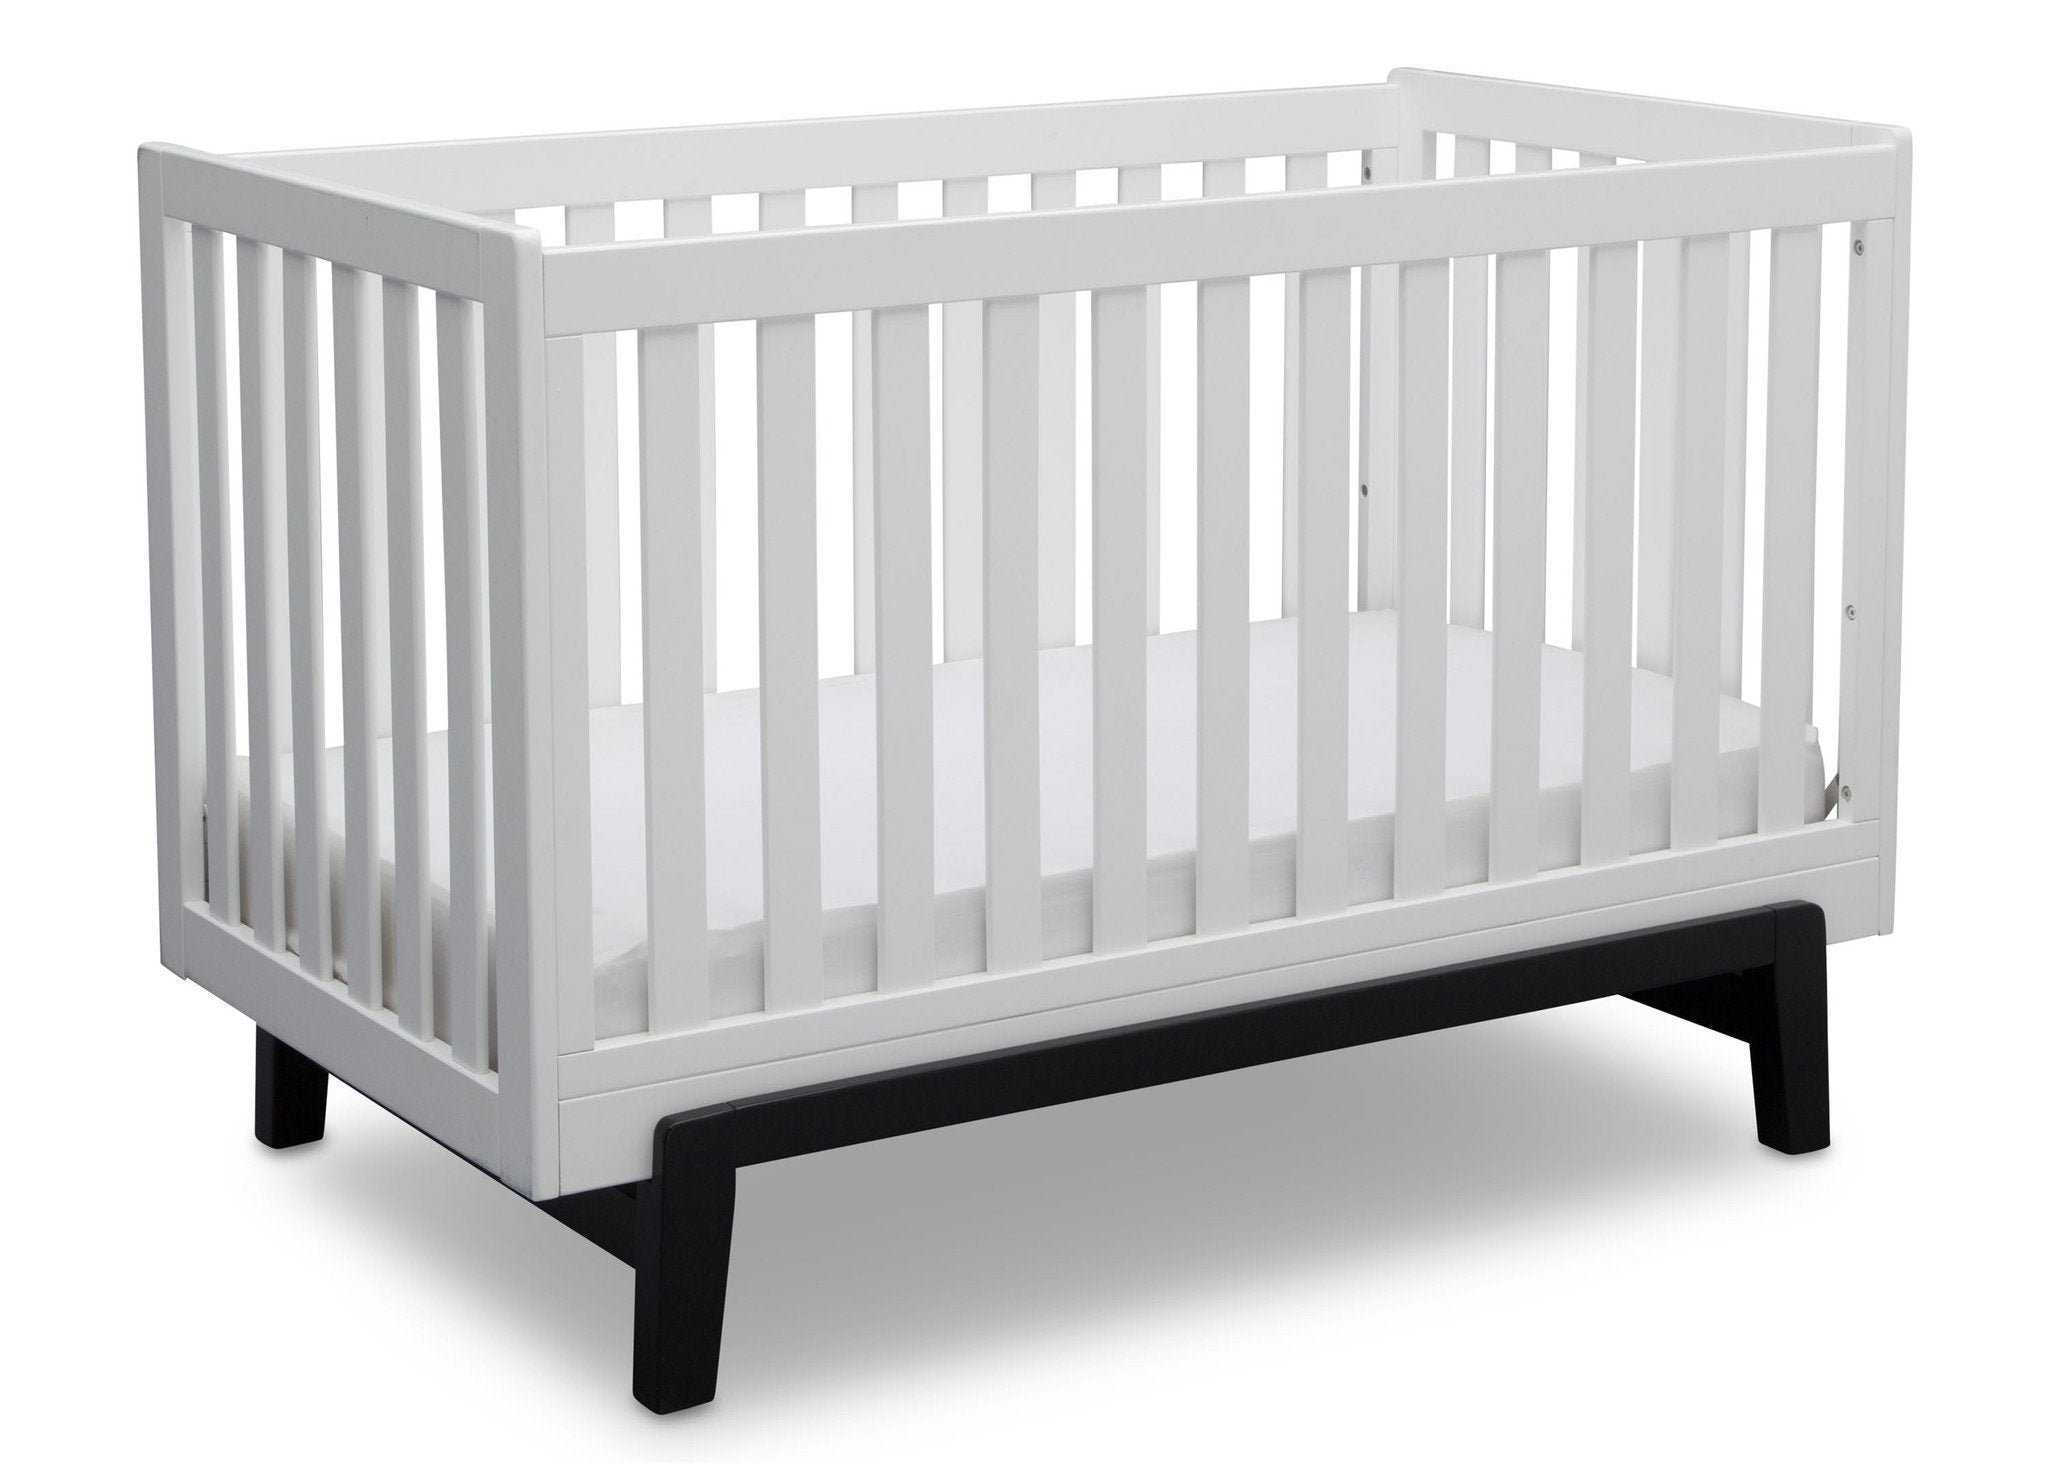 Delta Children Bianca White with Ebony (149) Aster 3-in-1 Crib, Angled Crib View a4a